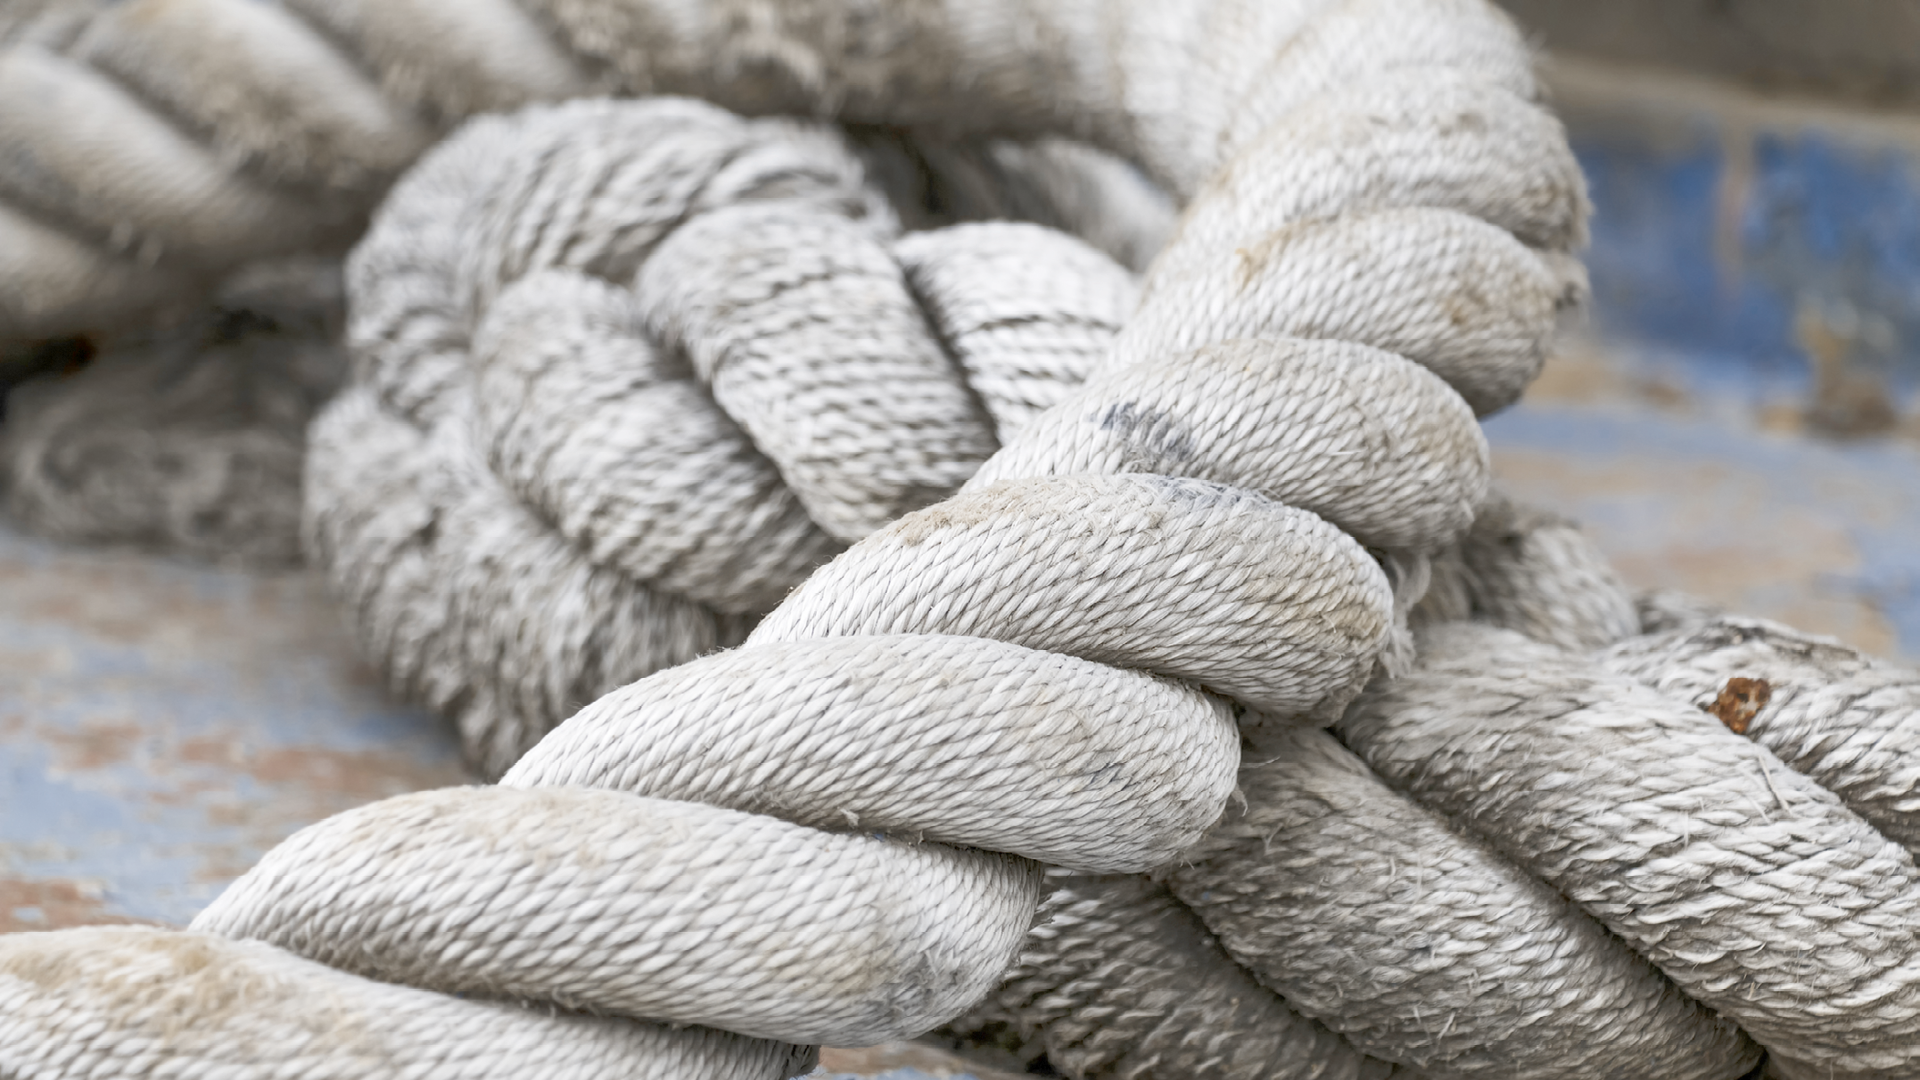 Old rope for mooring the ship